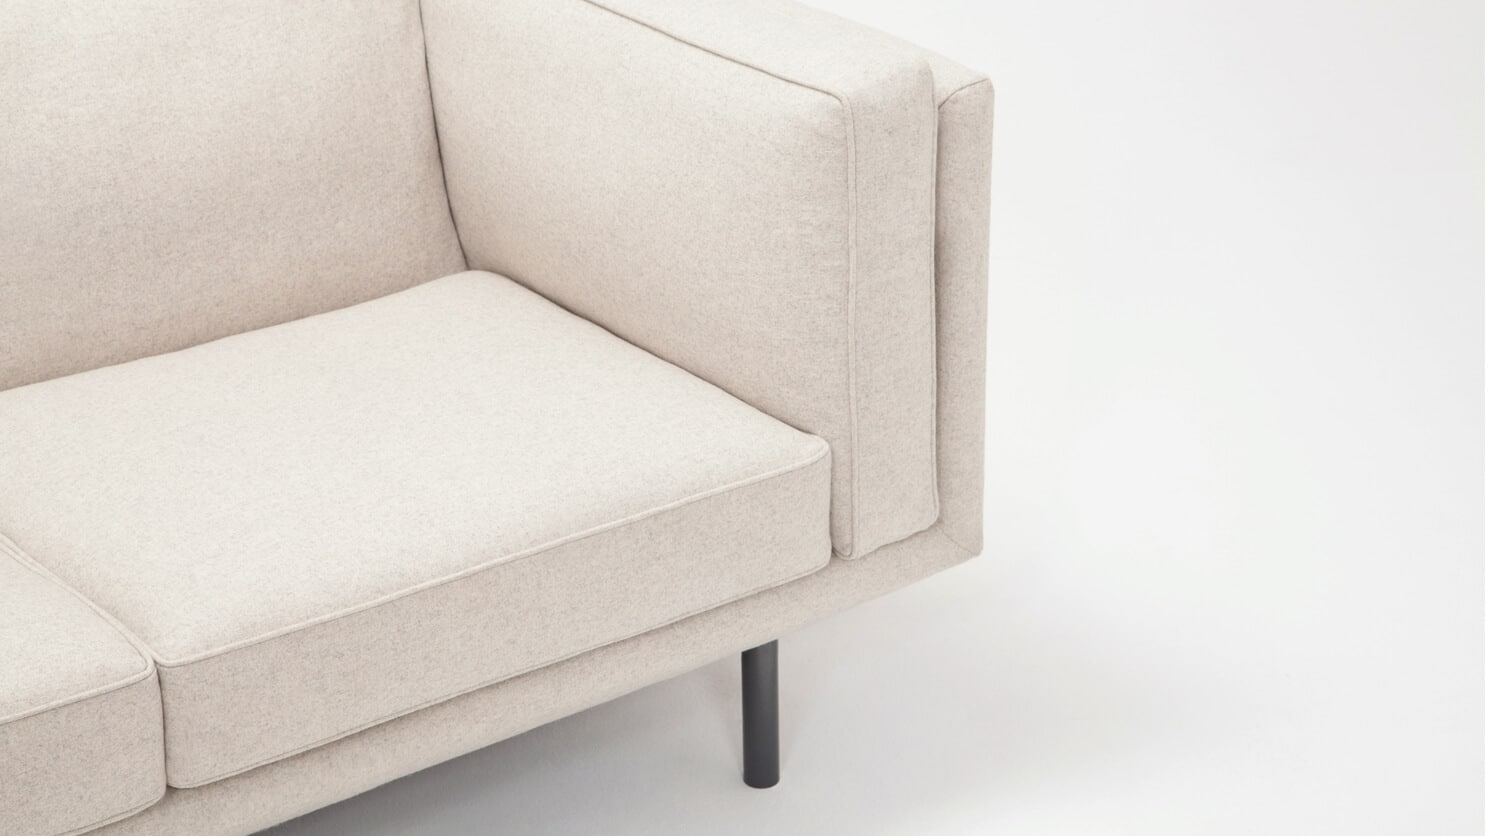 30154 03 03 loveseat plateau feather lana sand detail view